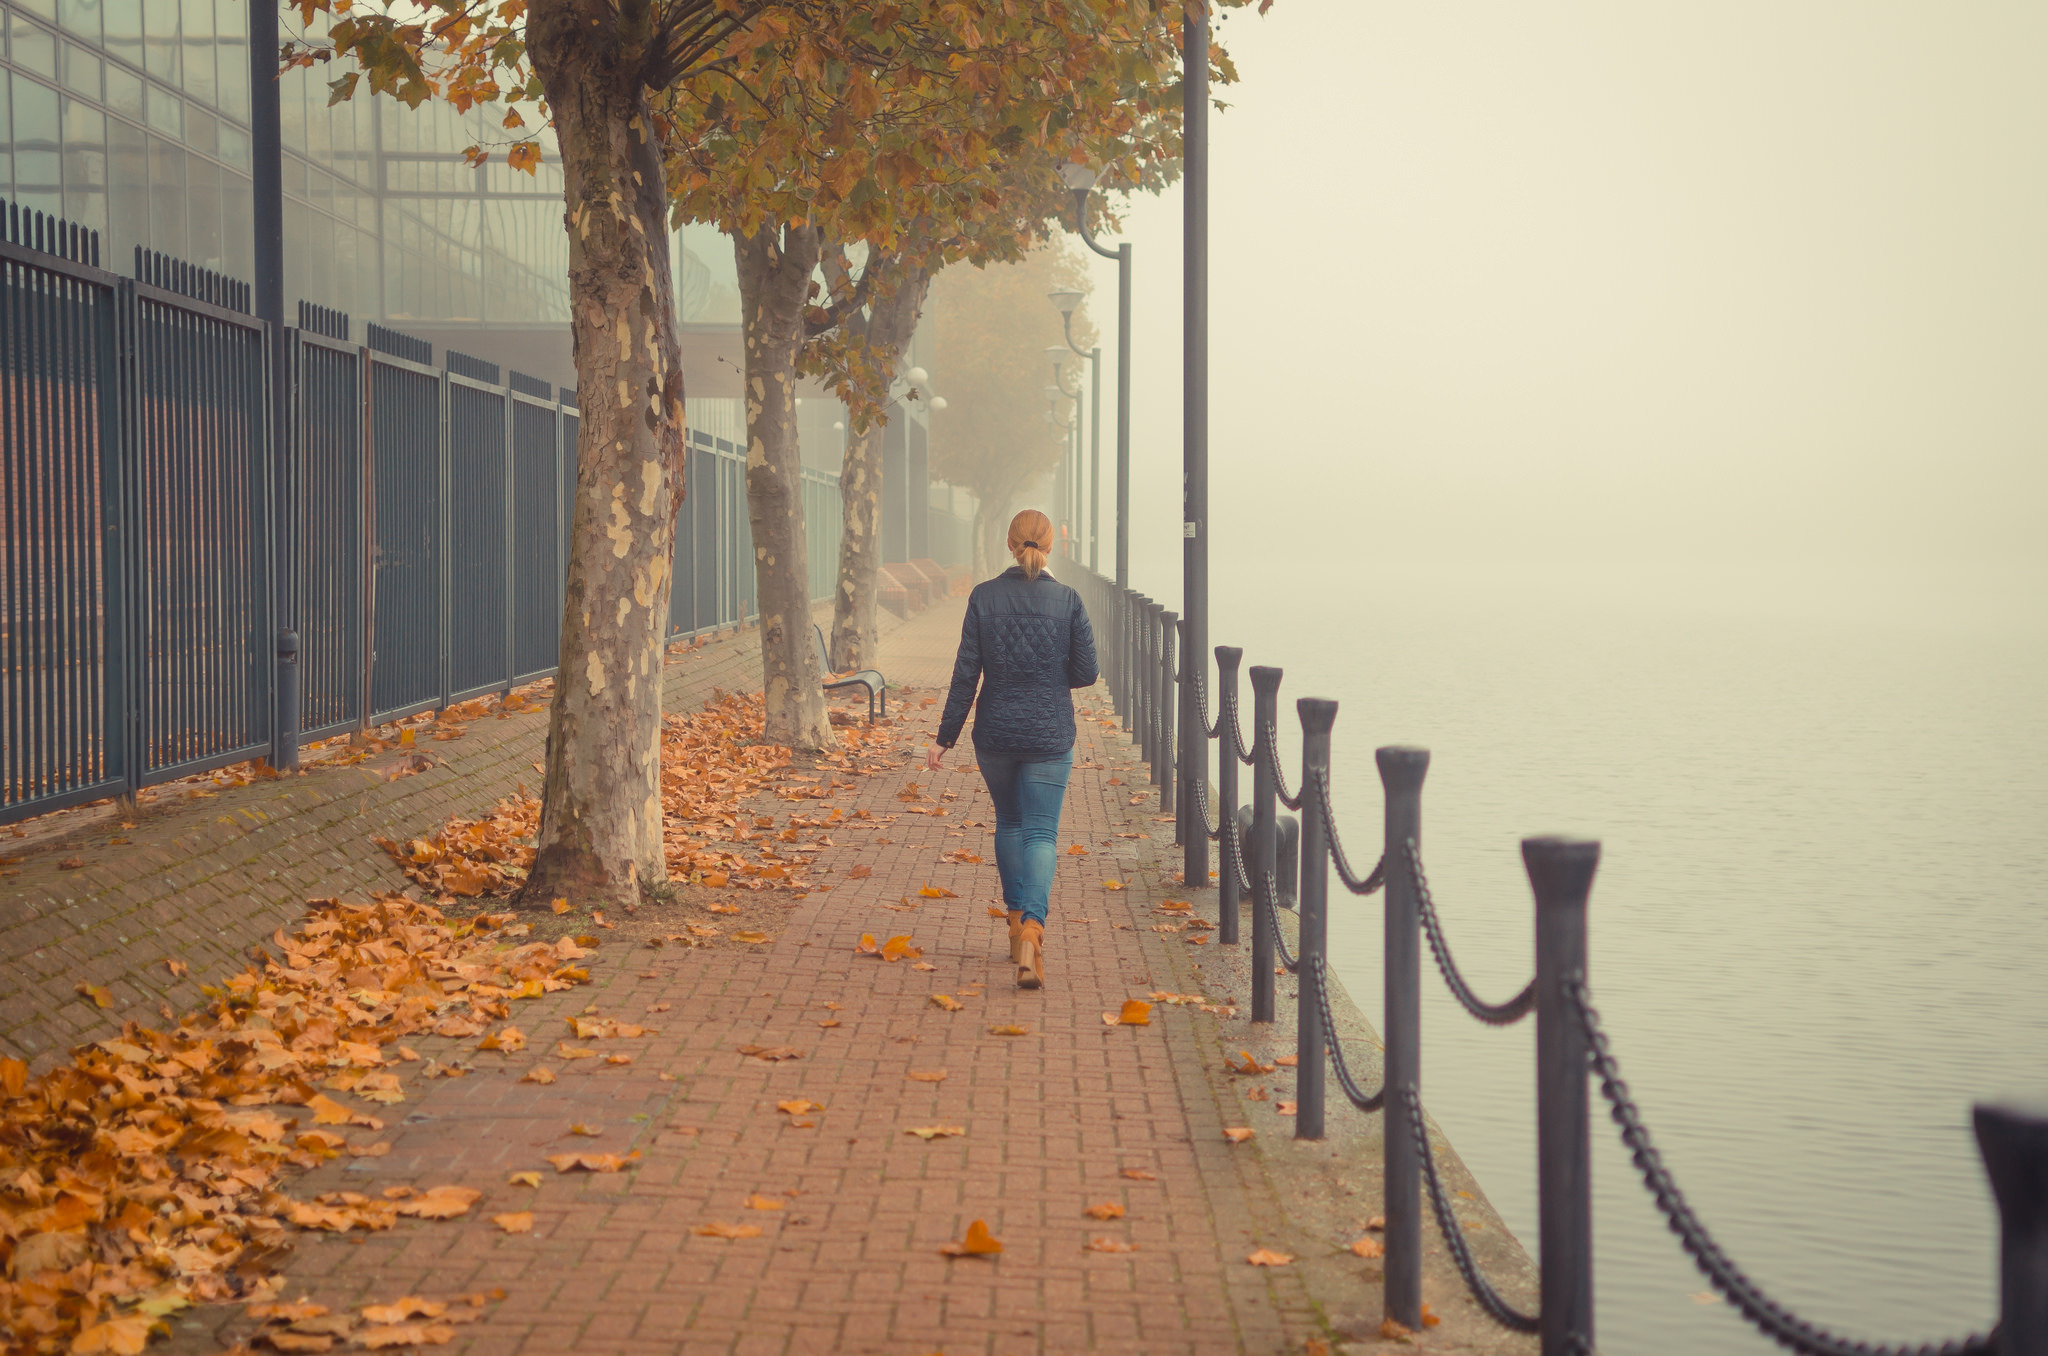 A woman walks by Millwall Outer Dock, London, on a misty day.